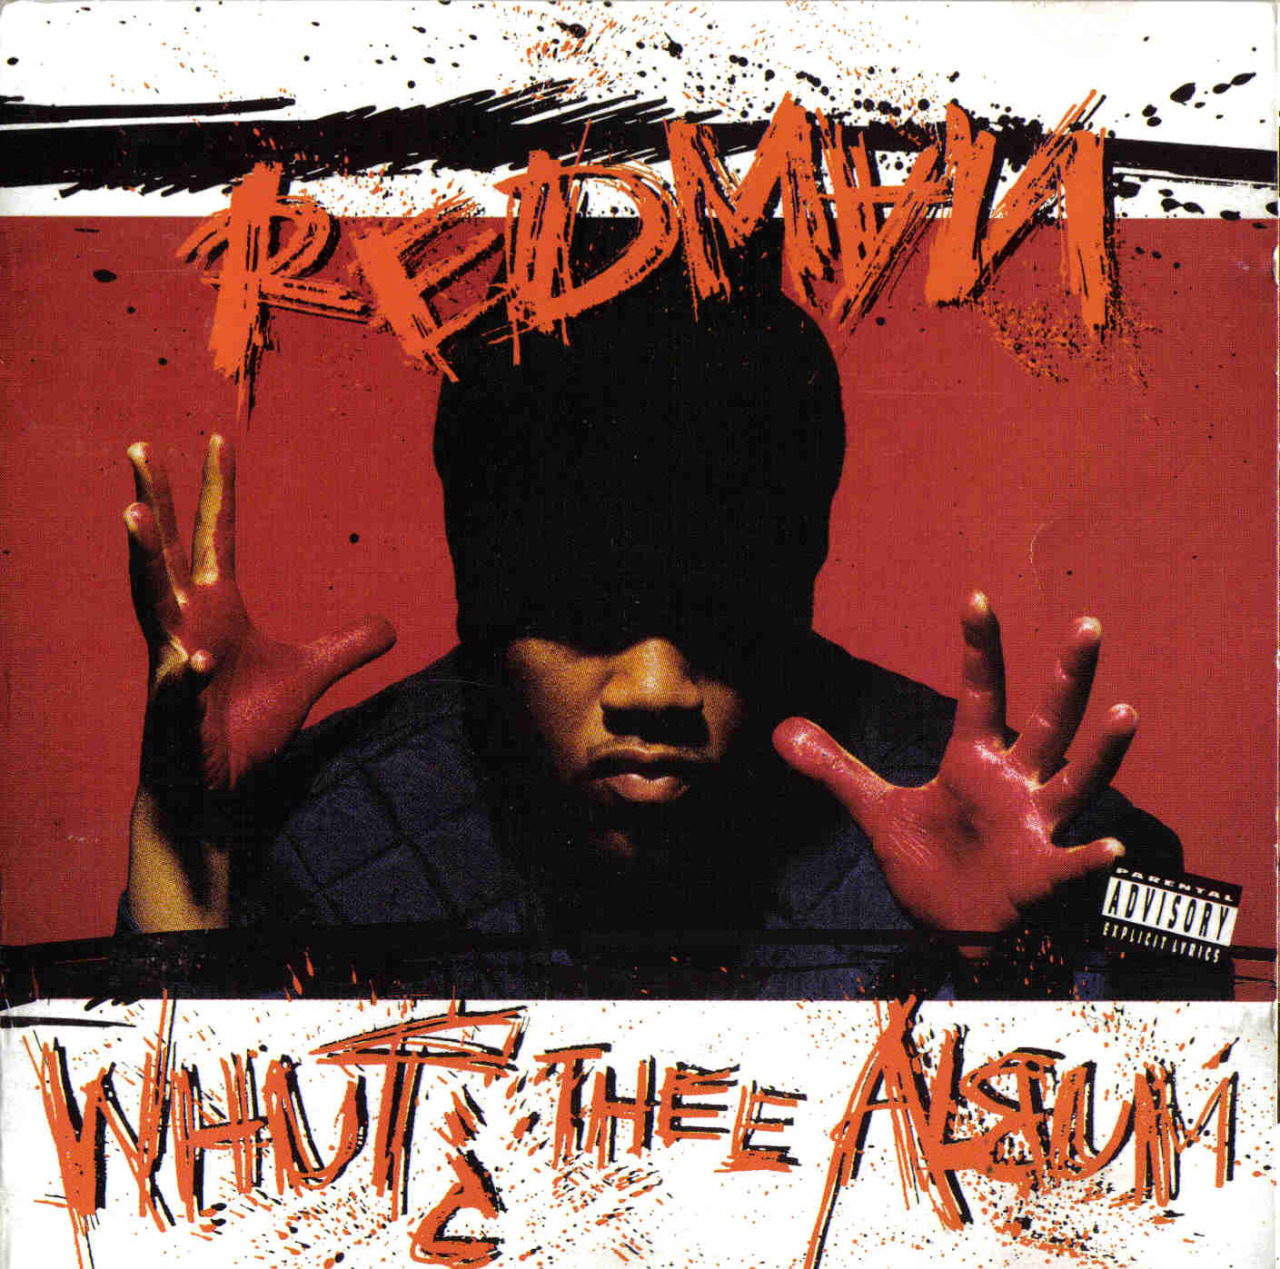 Redman dropped Whut? Thee Album 25 Years Ago Today | Coolin Out Hip Hop Shop